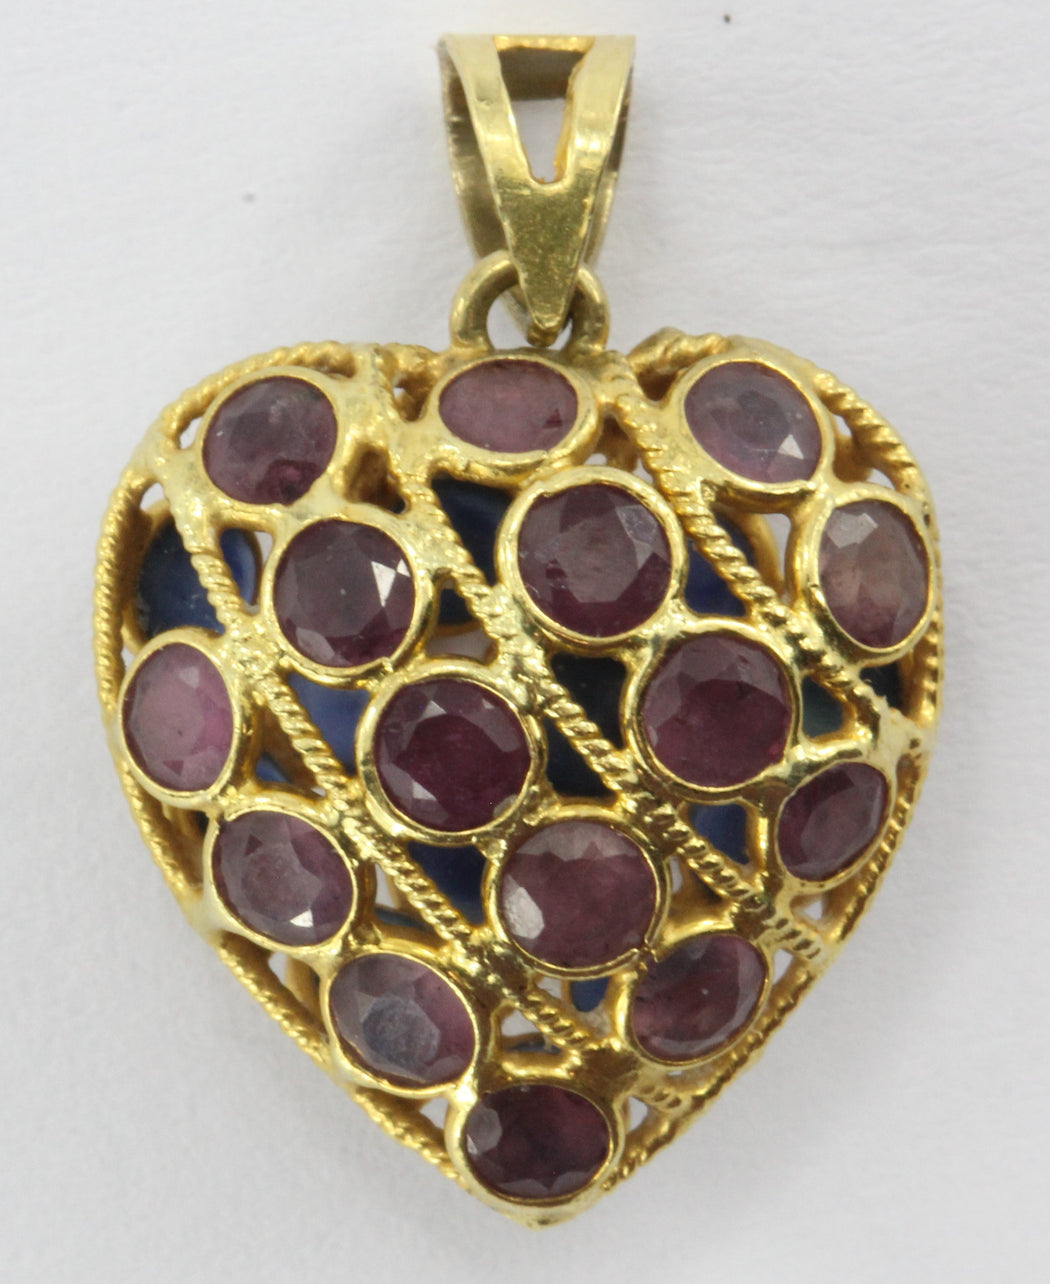 18k yellow gold ruby and sapphire double sided puffy heart charm